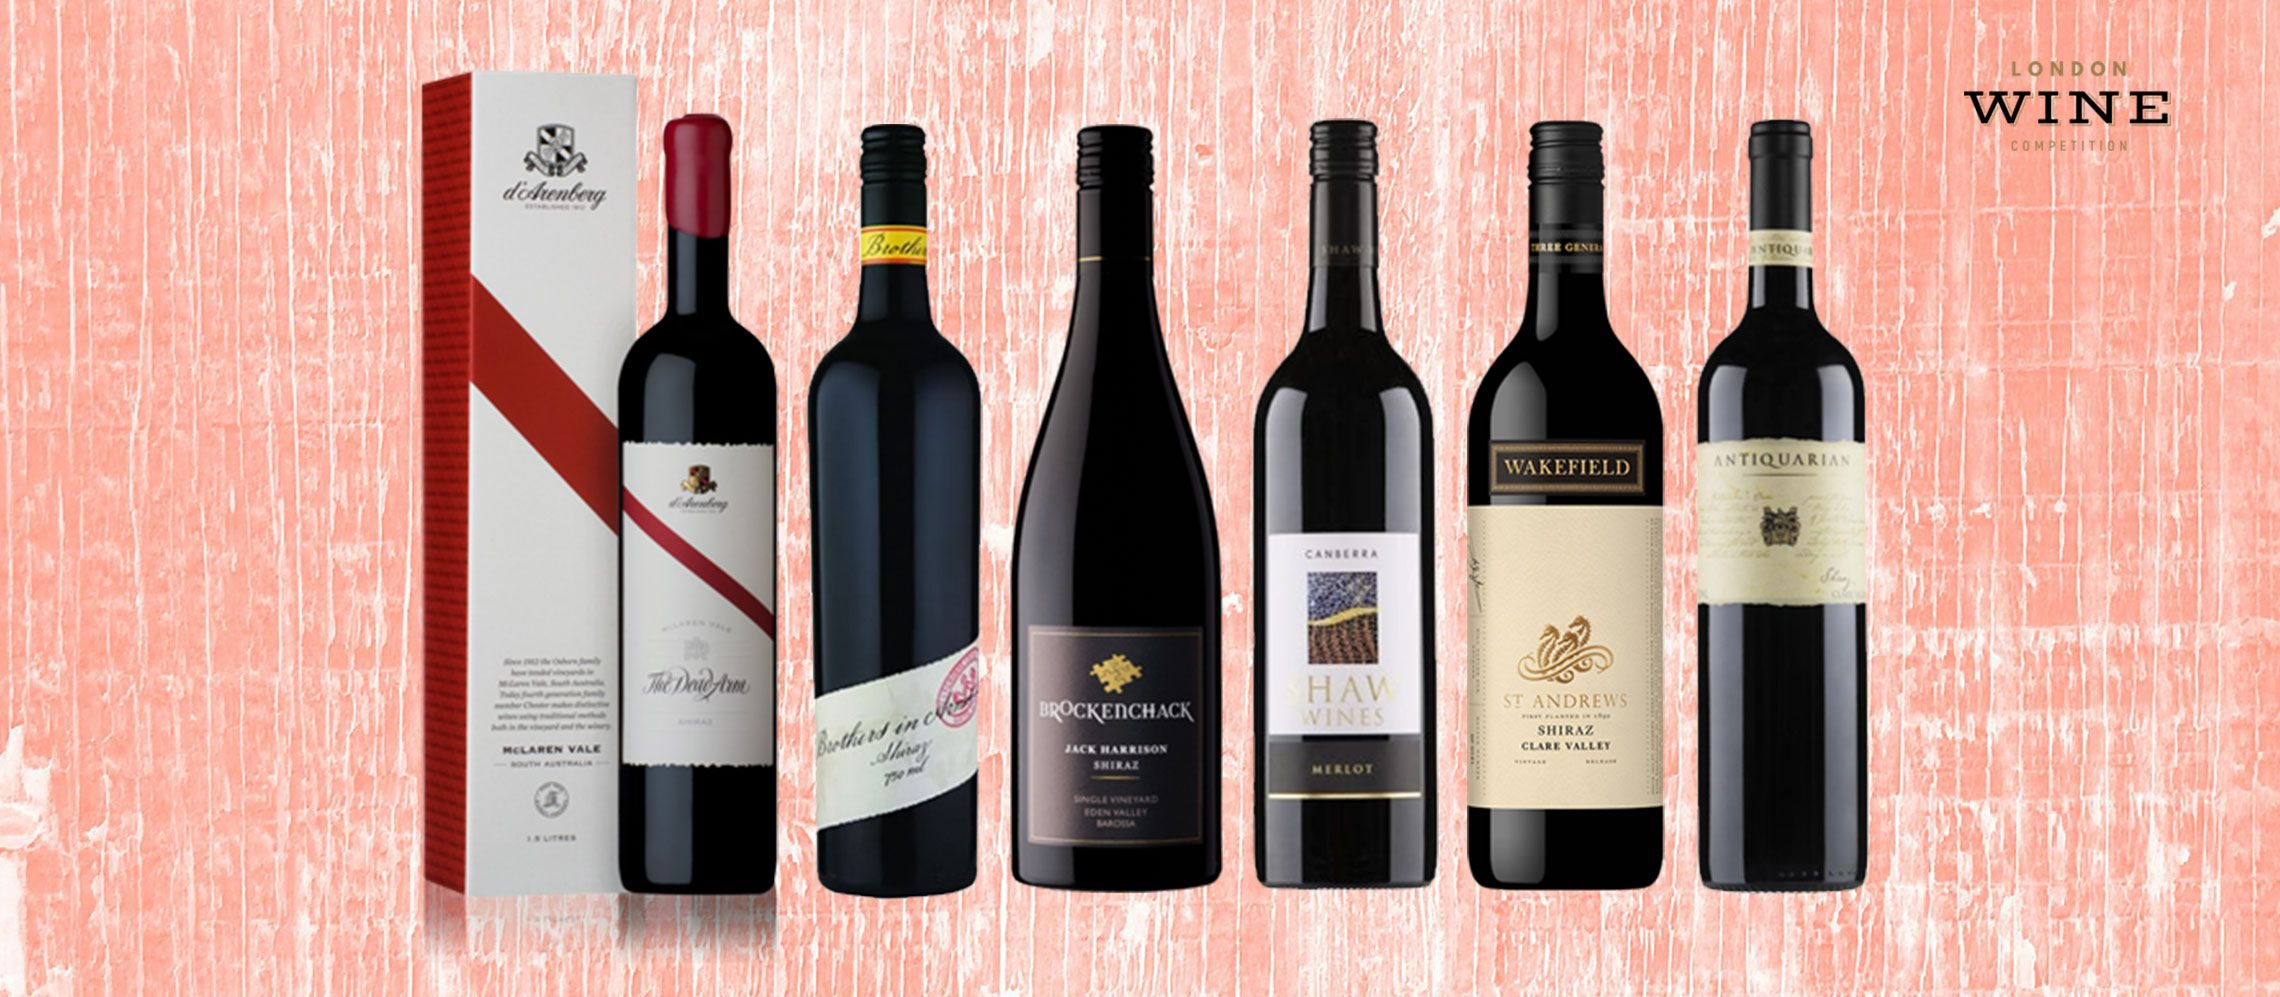 Photo for: Lip Smacking Wines From Australia To Try This 2020